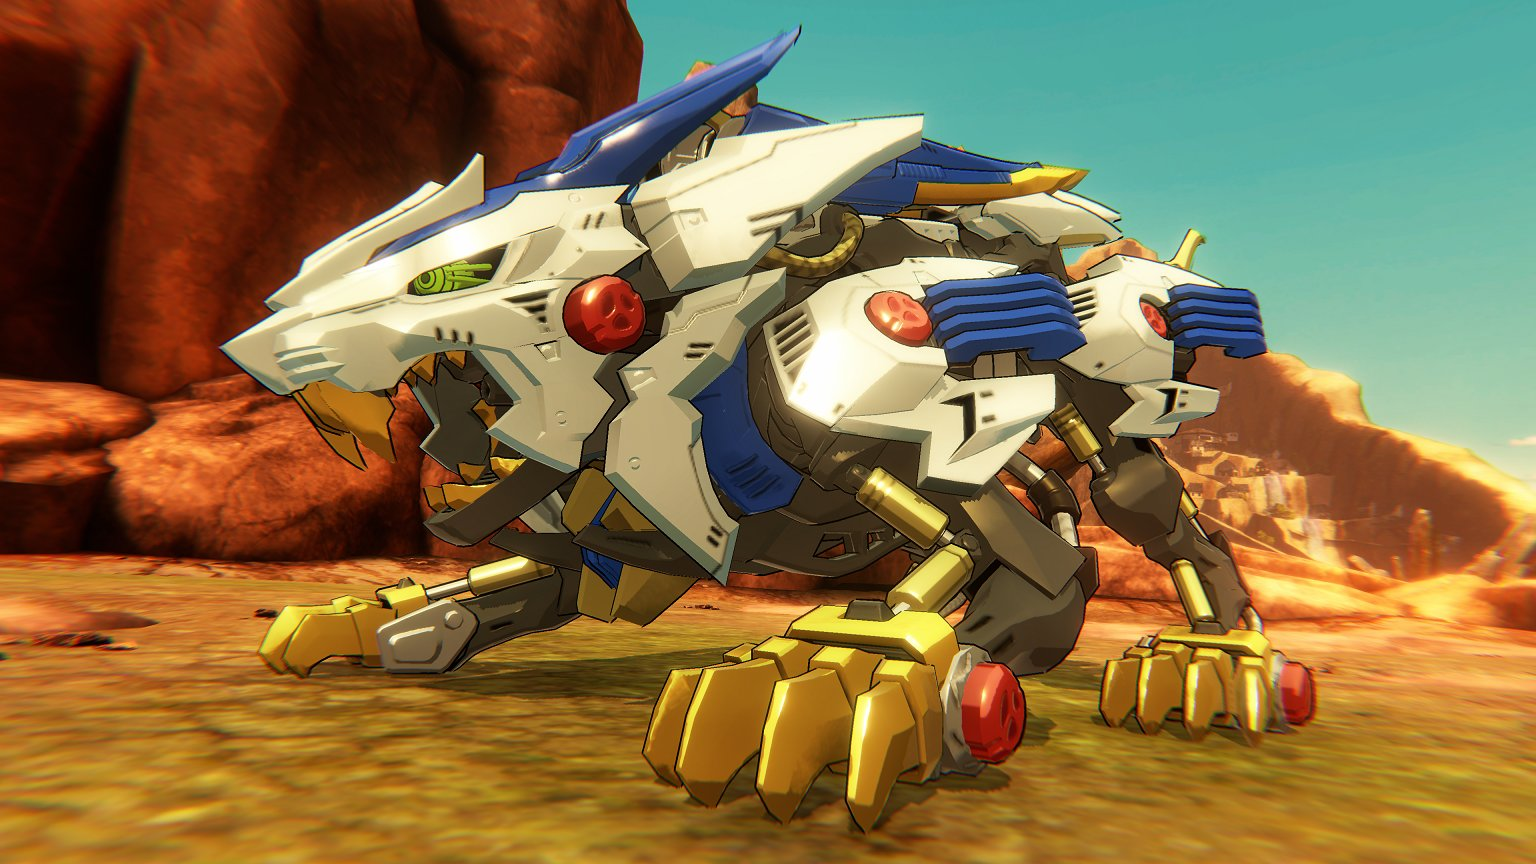 first screenshot of the zoids wild game for switch resetera